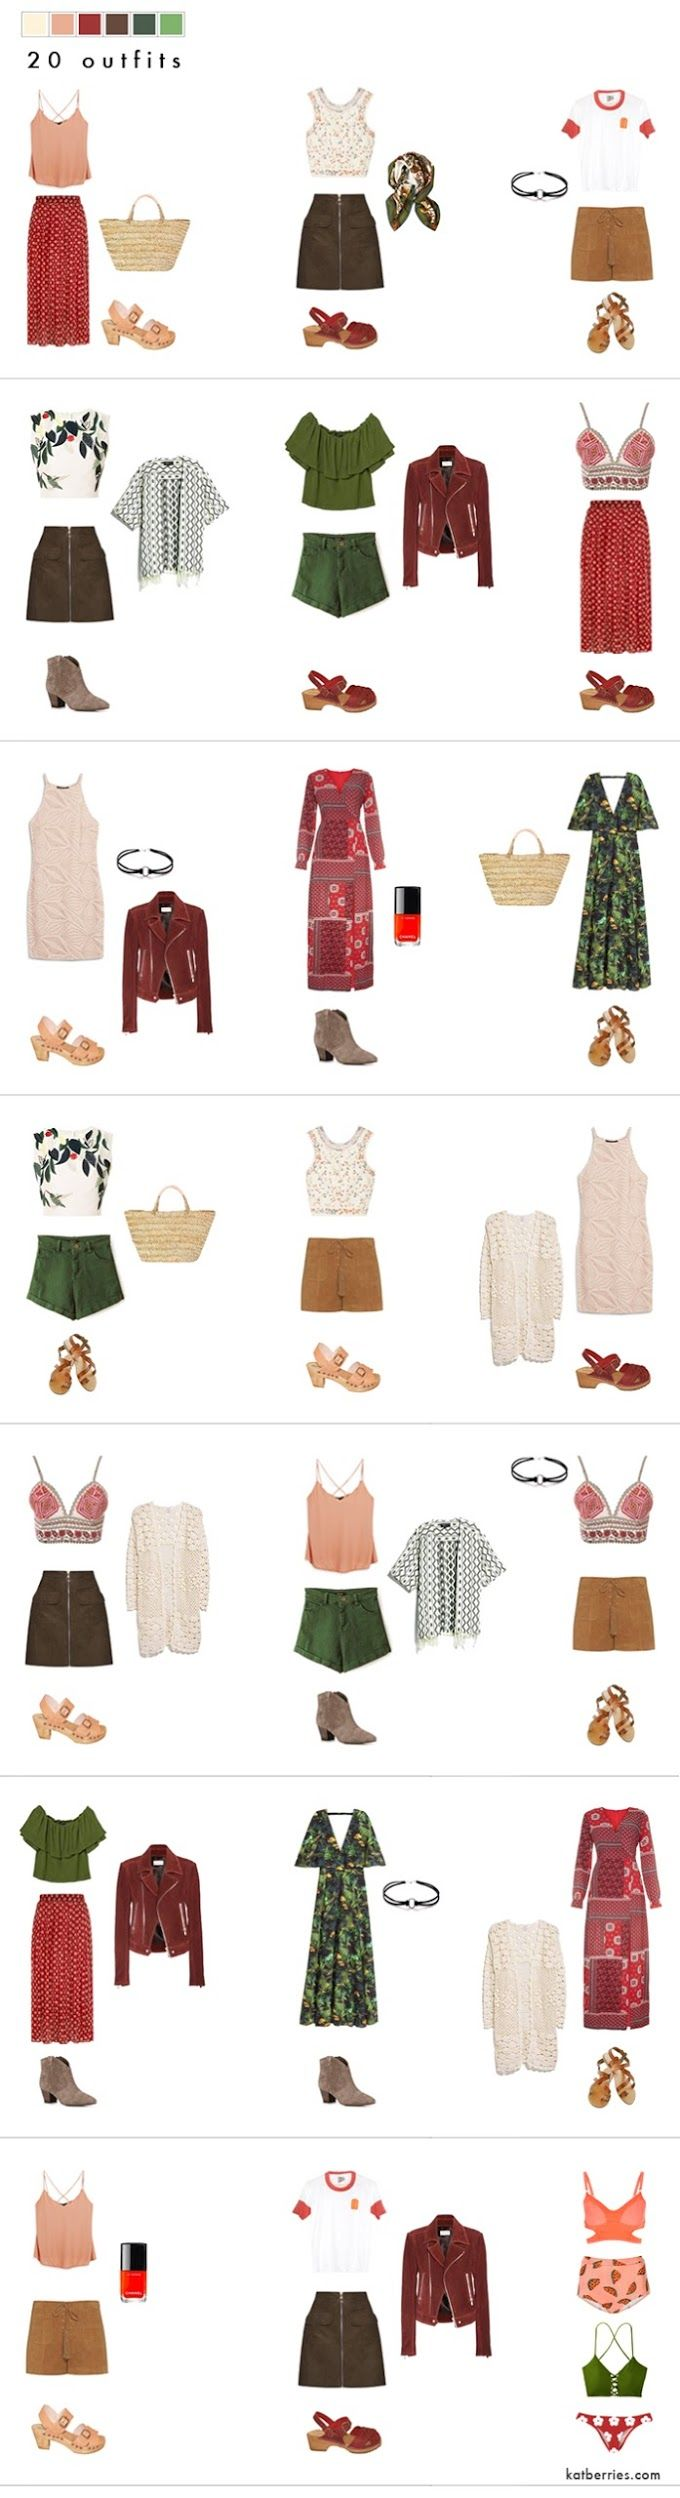 20 pieces, 20 outfits. Small wardrobe doesn't have to be neutral. Go colour crazy! (but with a little bit of planning beforehand) COLOURFUL 20 PIECE BOHEMIAN SUMMER WARDROBE ( 20 OUTFITS!) Colorful capsule wardrobe